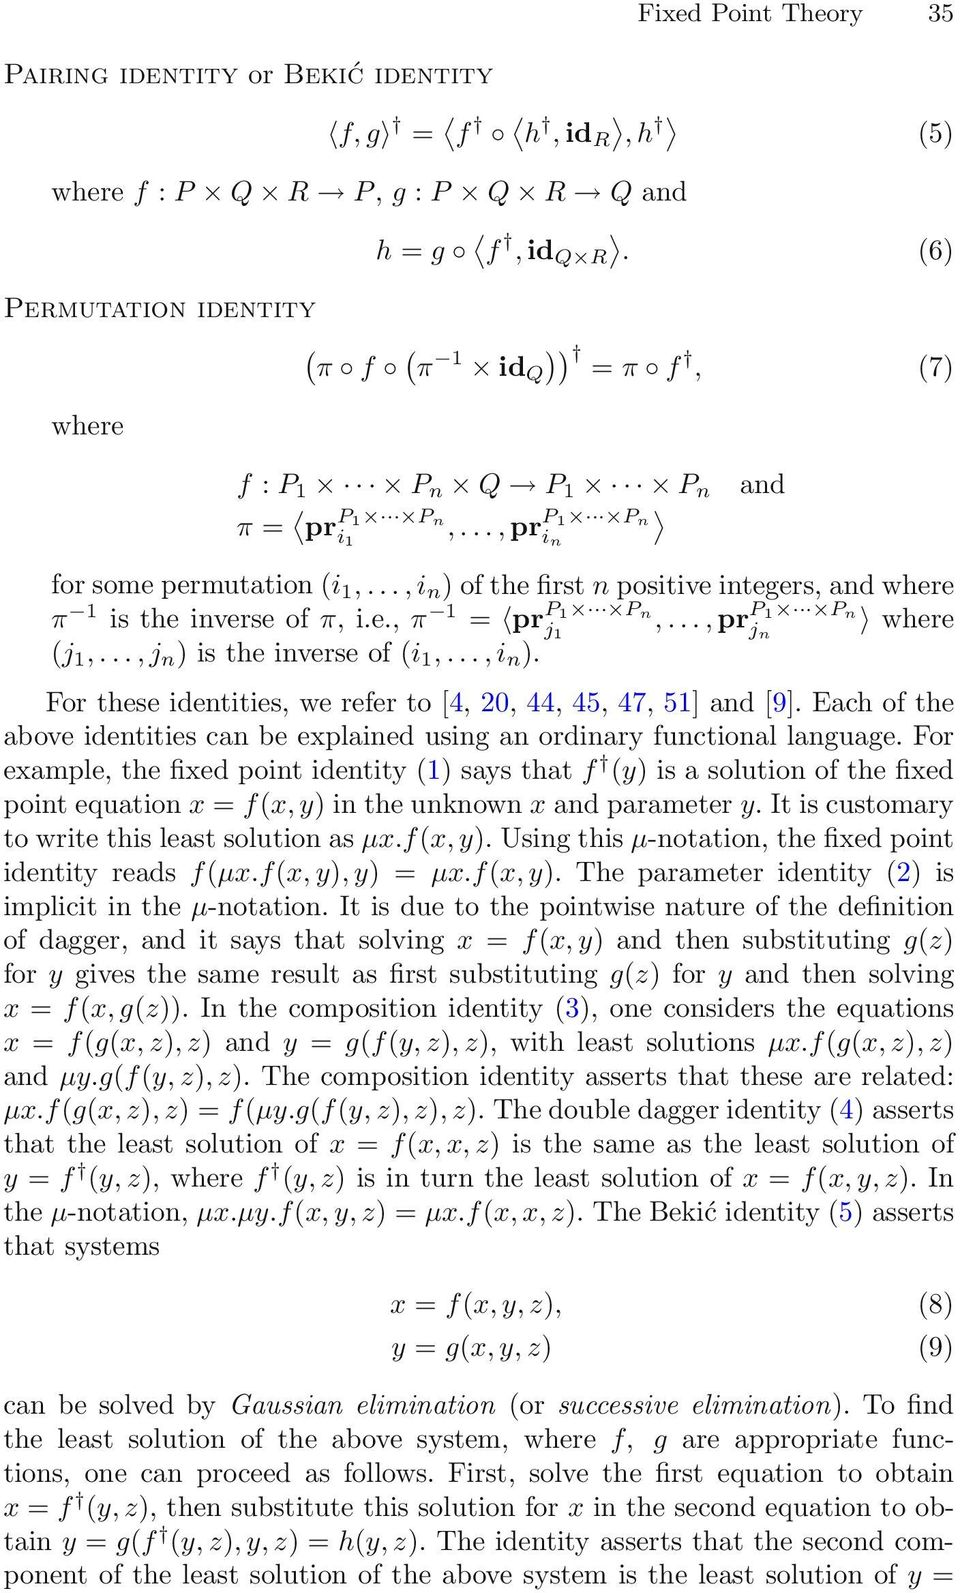 ..,i n ) of the first n positive integers, and where π 1 is the inverse of π, i.e., π 1 = pr P1 Pn j 1,...,pr P1 Pn j n where (j 1,...,j n )istheinverseof(i 1,...,i n ). For these identities, we refer to [4, 20, 44, 45, 47, 51] and[9].